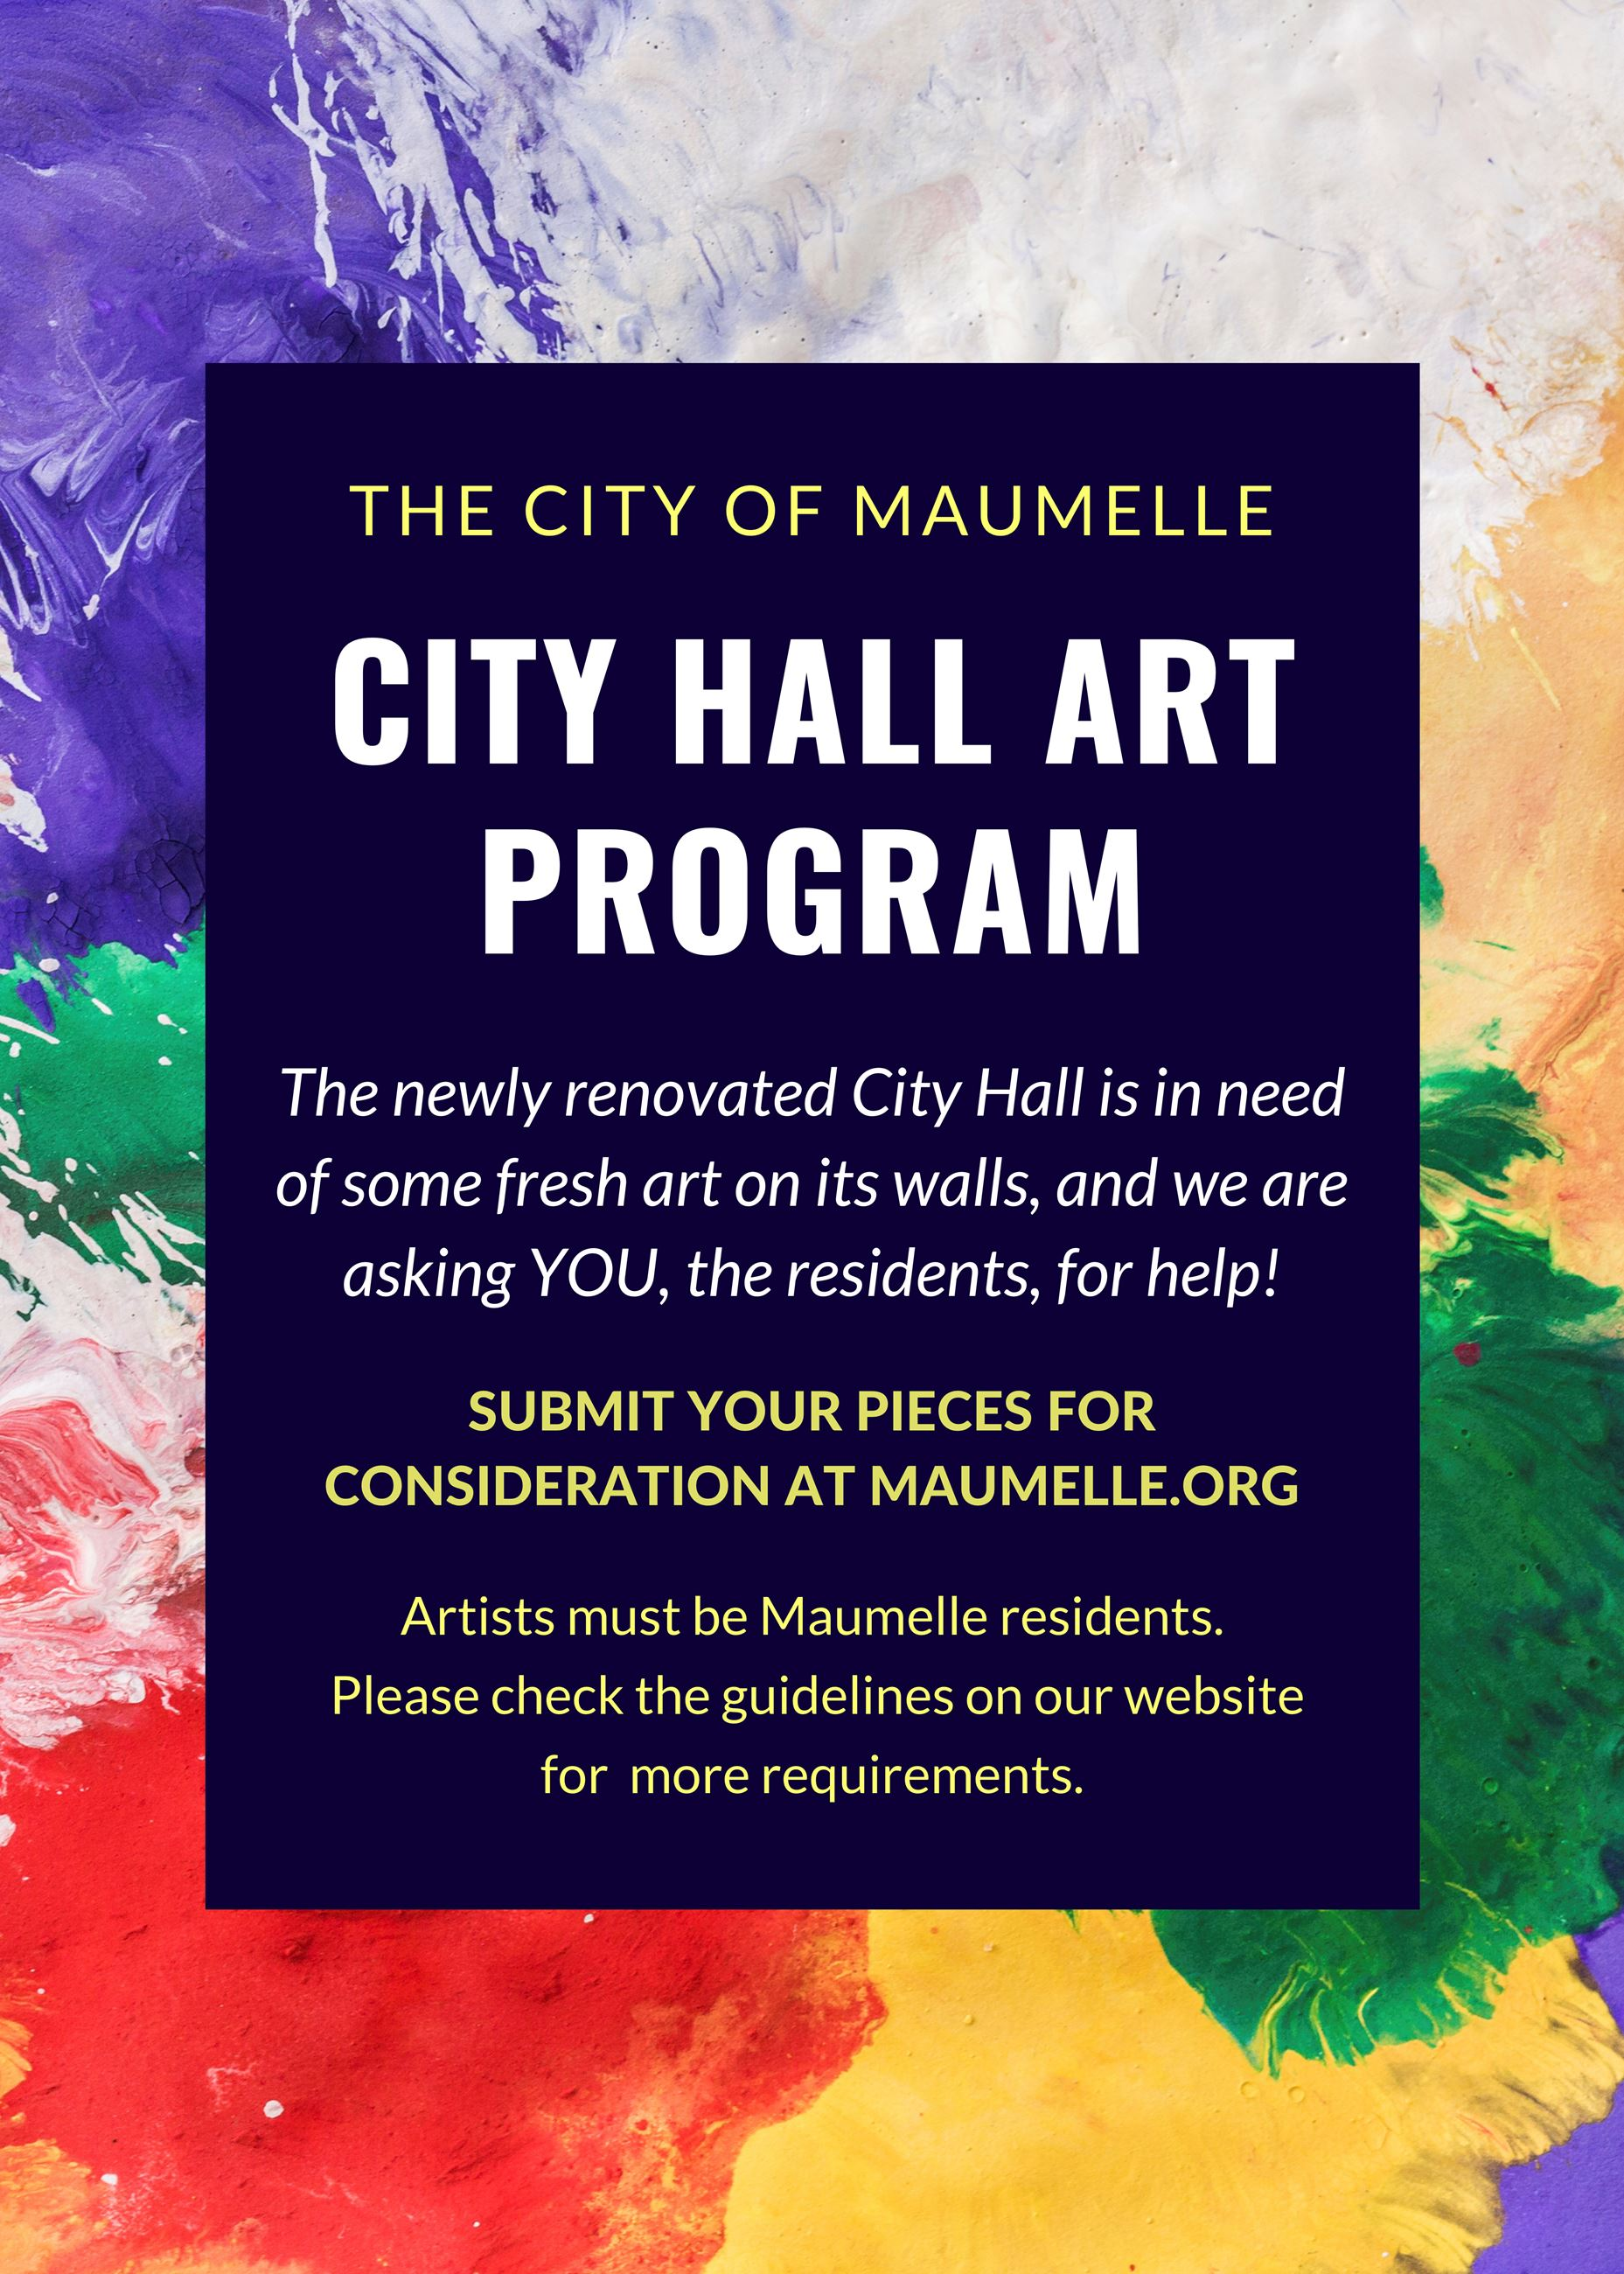 City Hall Art Program